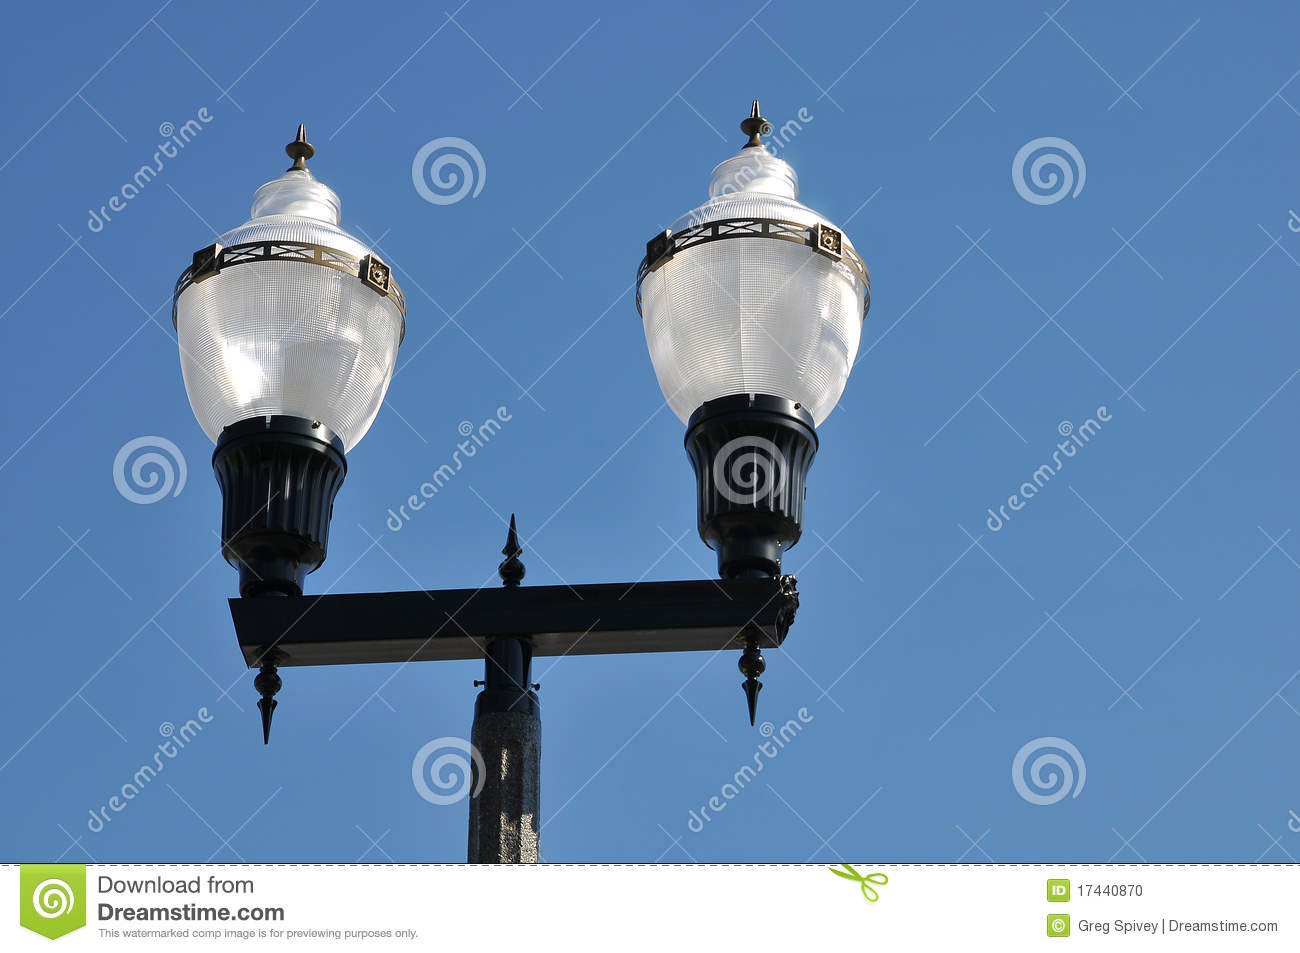 Download Vintage street lamp stock photo. Image of object, artistic - 17440870